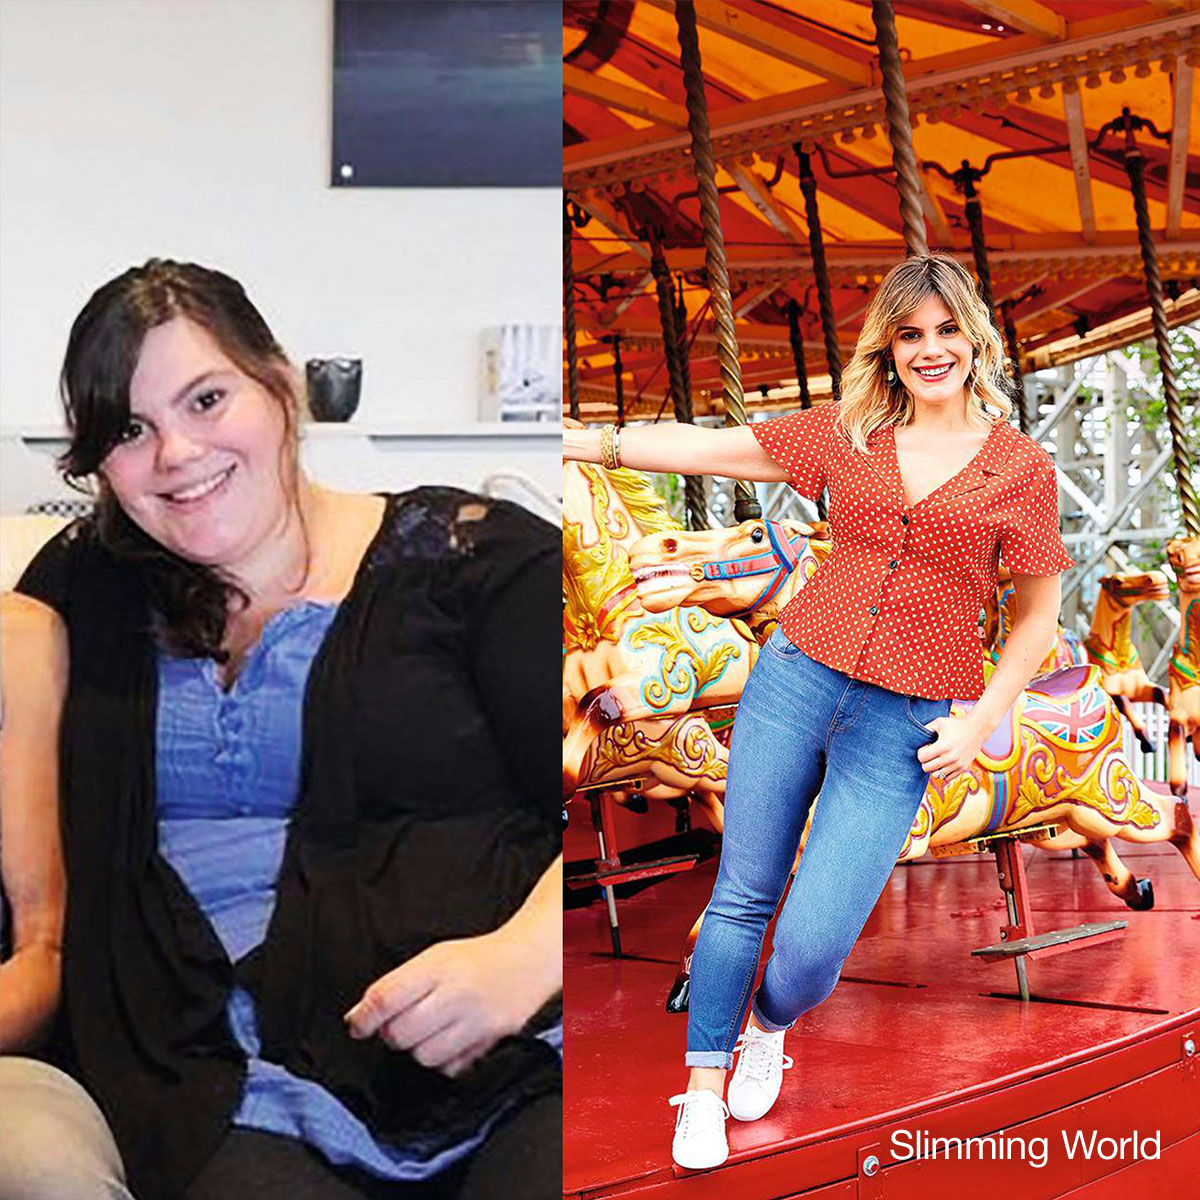 Nicola lost an amazing 7st at her #SlimmingWorld group ! She's now loving being a healthier mum and is enjoying life in a way she never thought she could . Read her inspirational #WeightLoss story:  http:// ow.ly/89C050xqo9Y     #TransformationTuesday <br>http://pic.twitter.com/kDXLyYbBkh